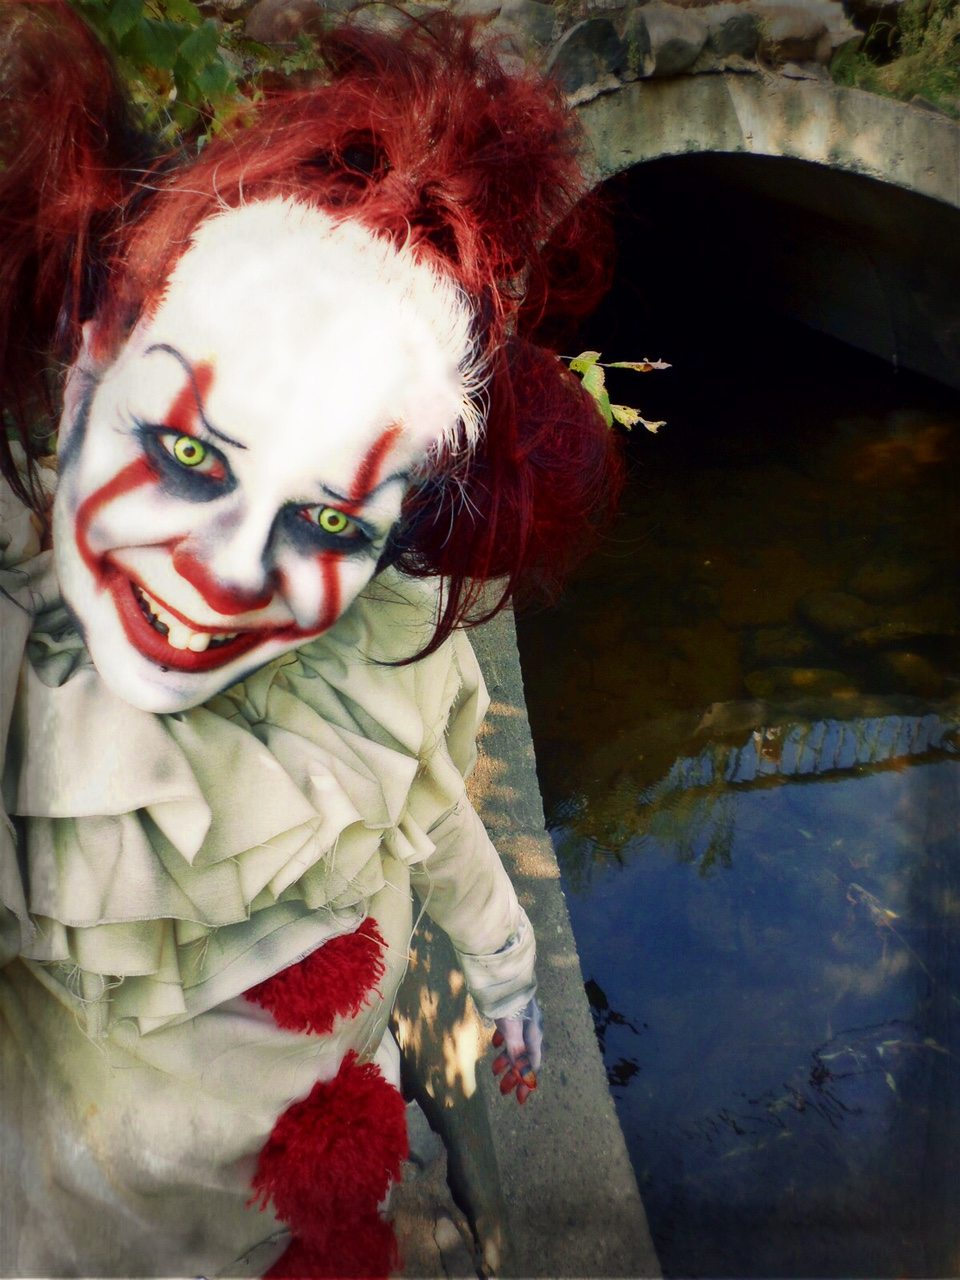 jacquielanternit image2 - Jacquie Lantern Returns With a New Pennywise Makeup Tutorial